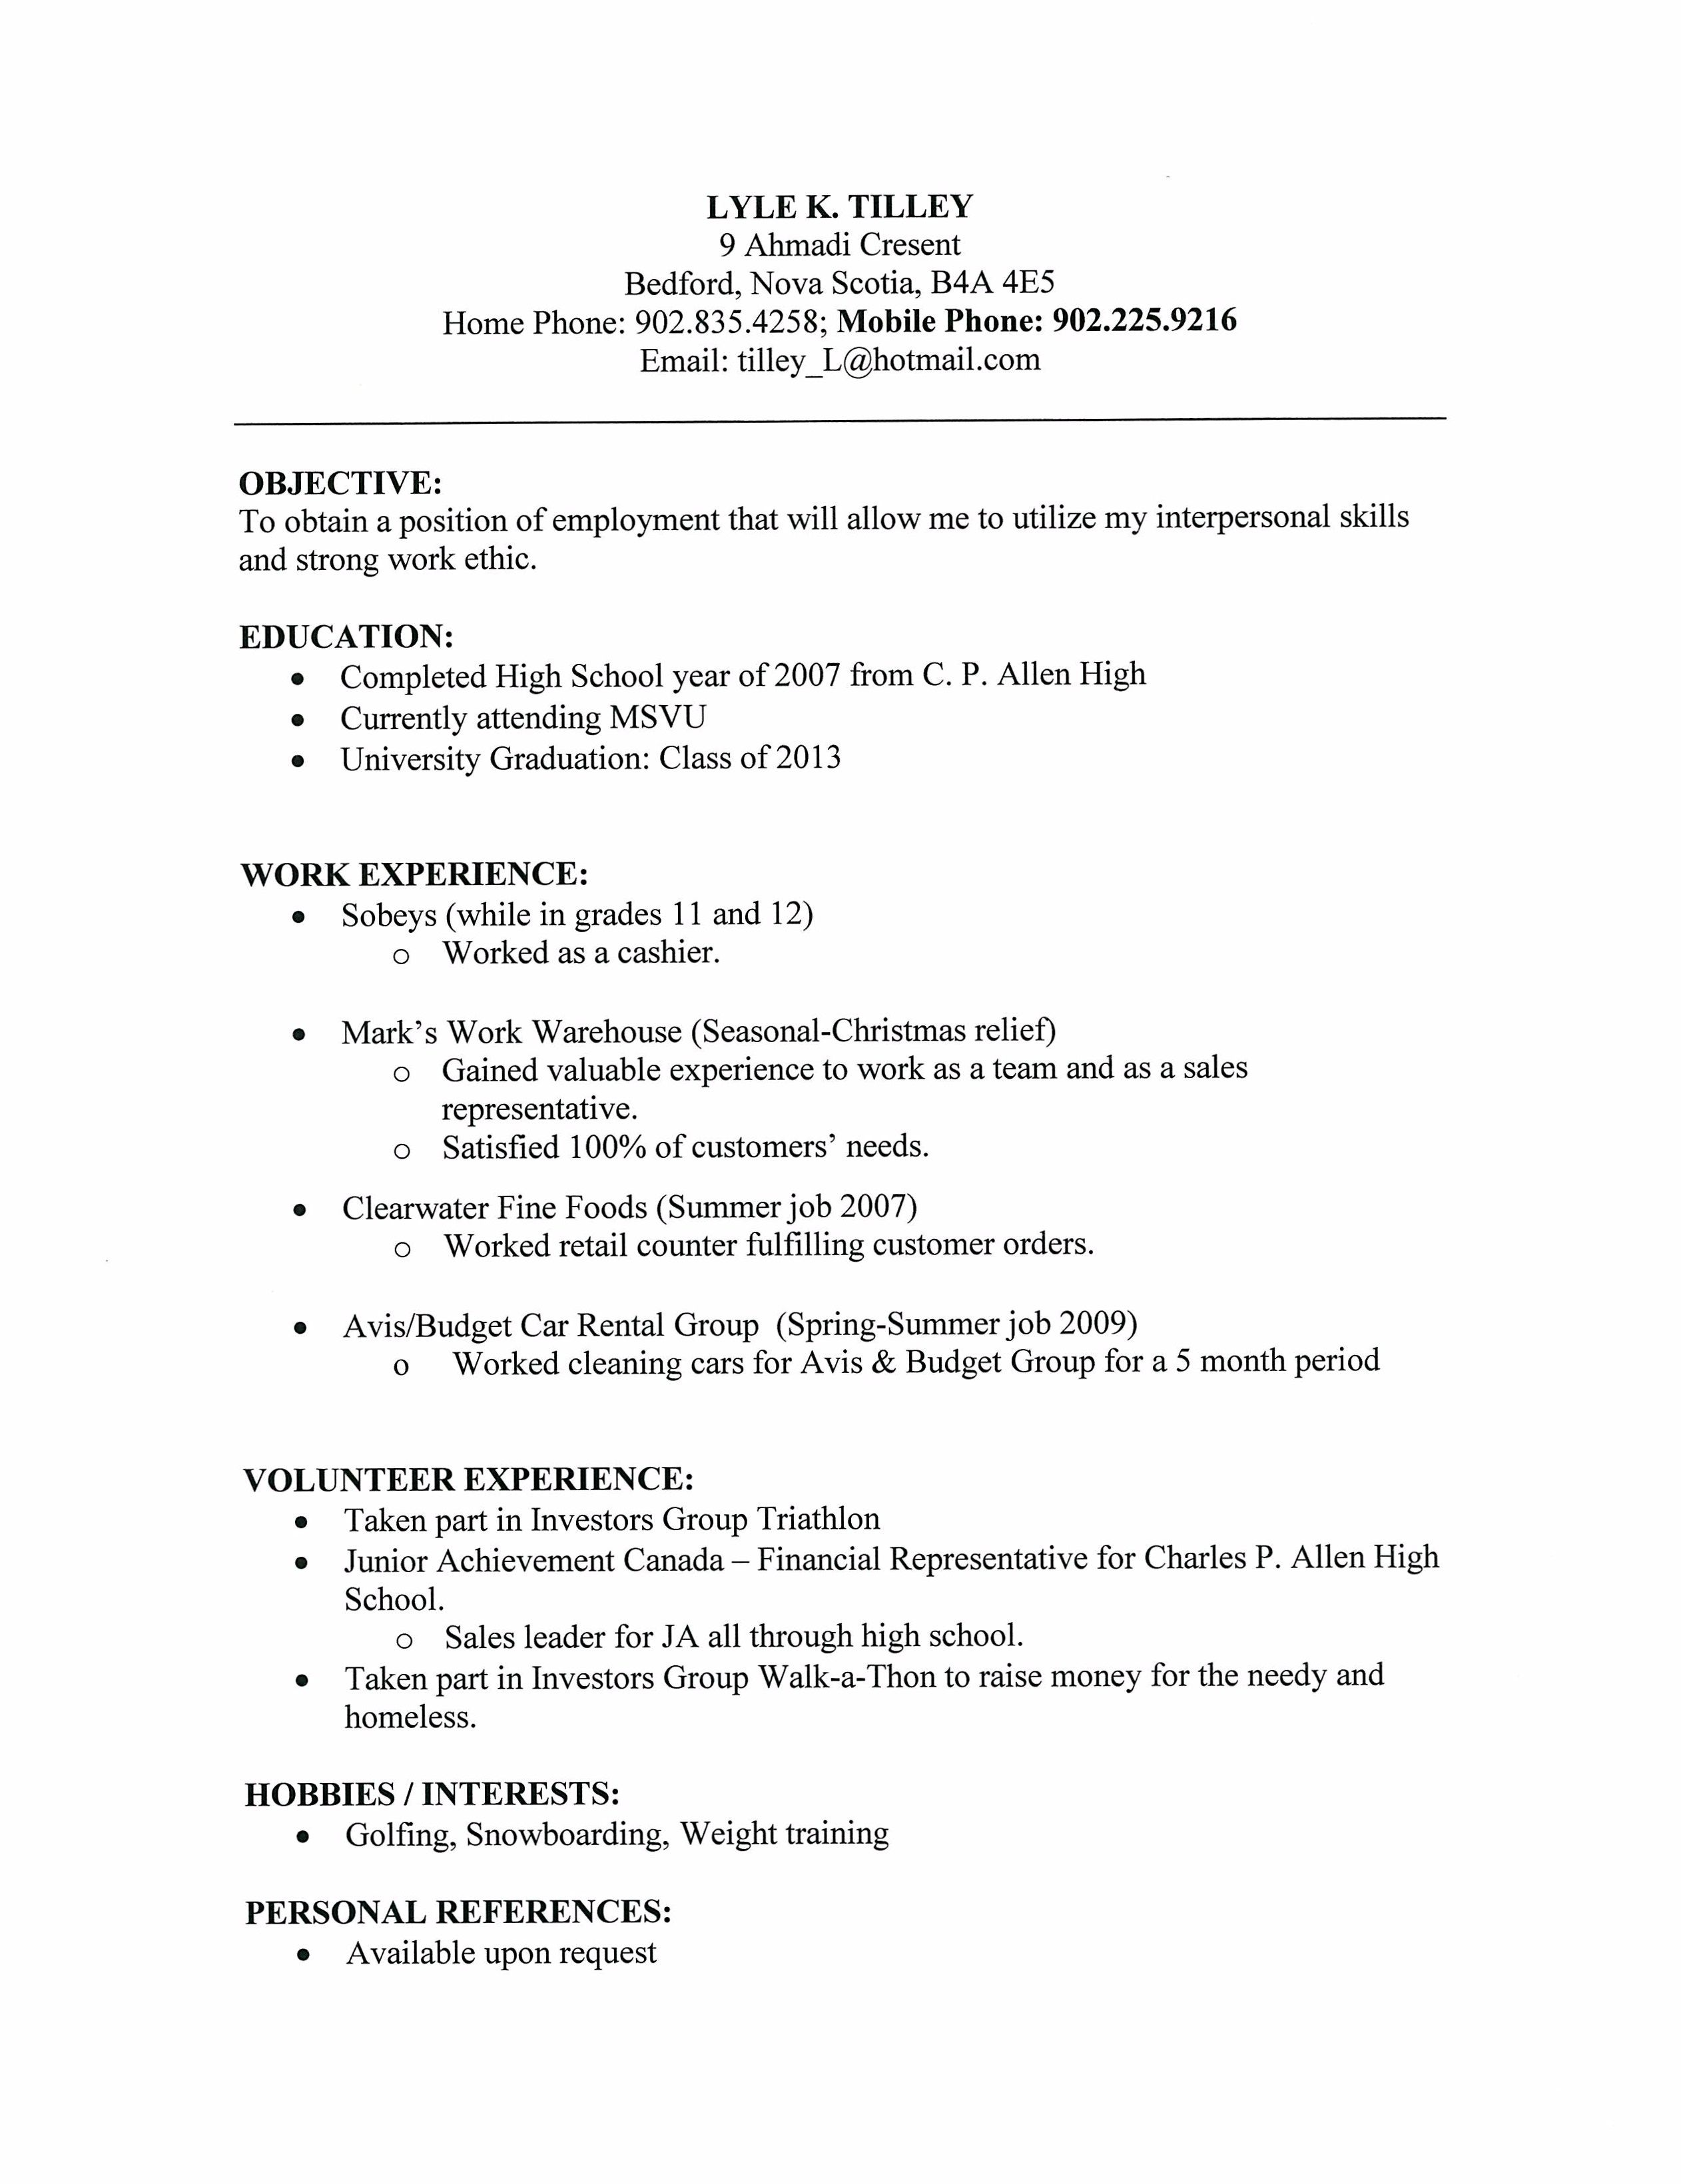 Interests On Resume Captivating Resume Amp Cover Letter Lyle Tilley Template Http Webdesign  Format .